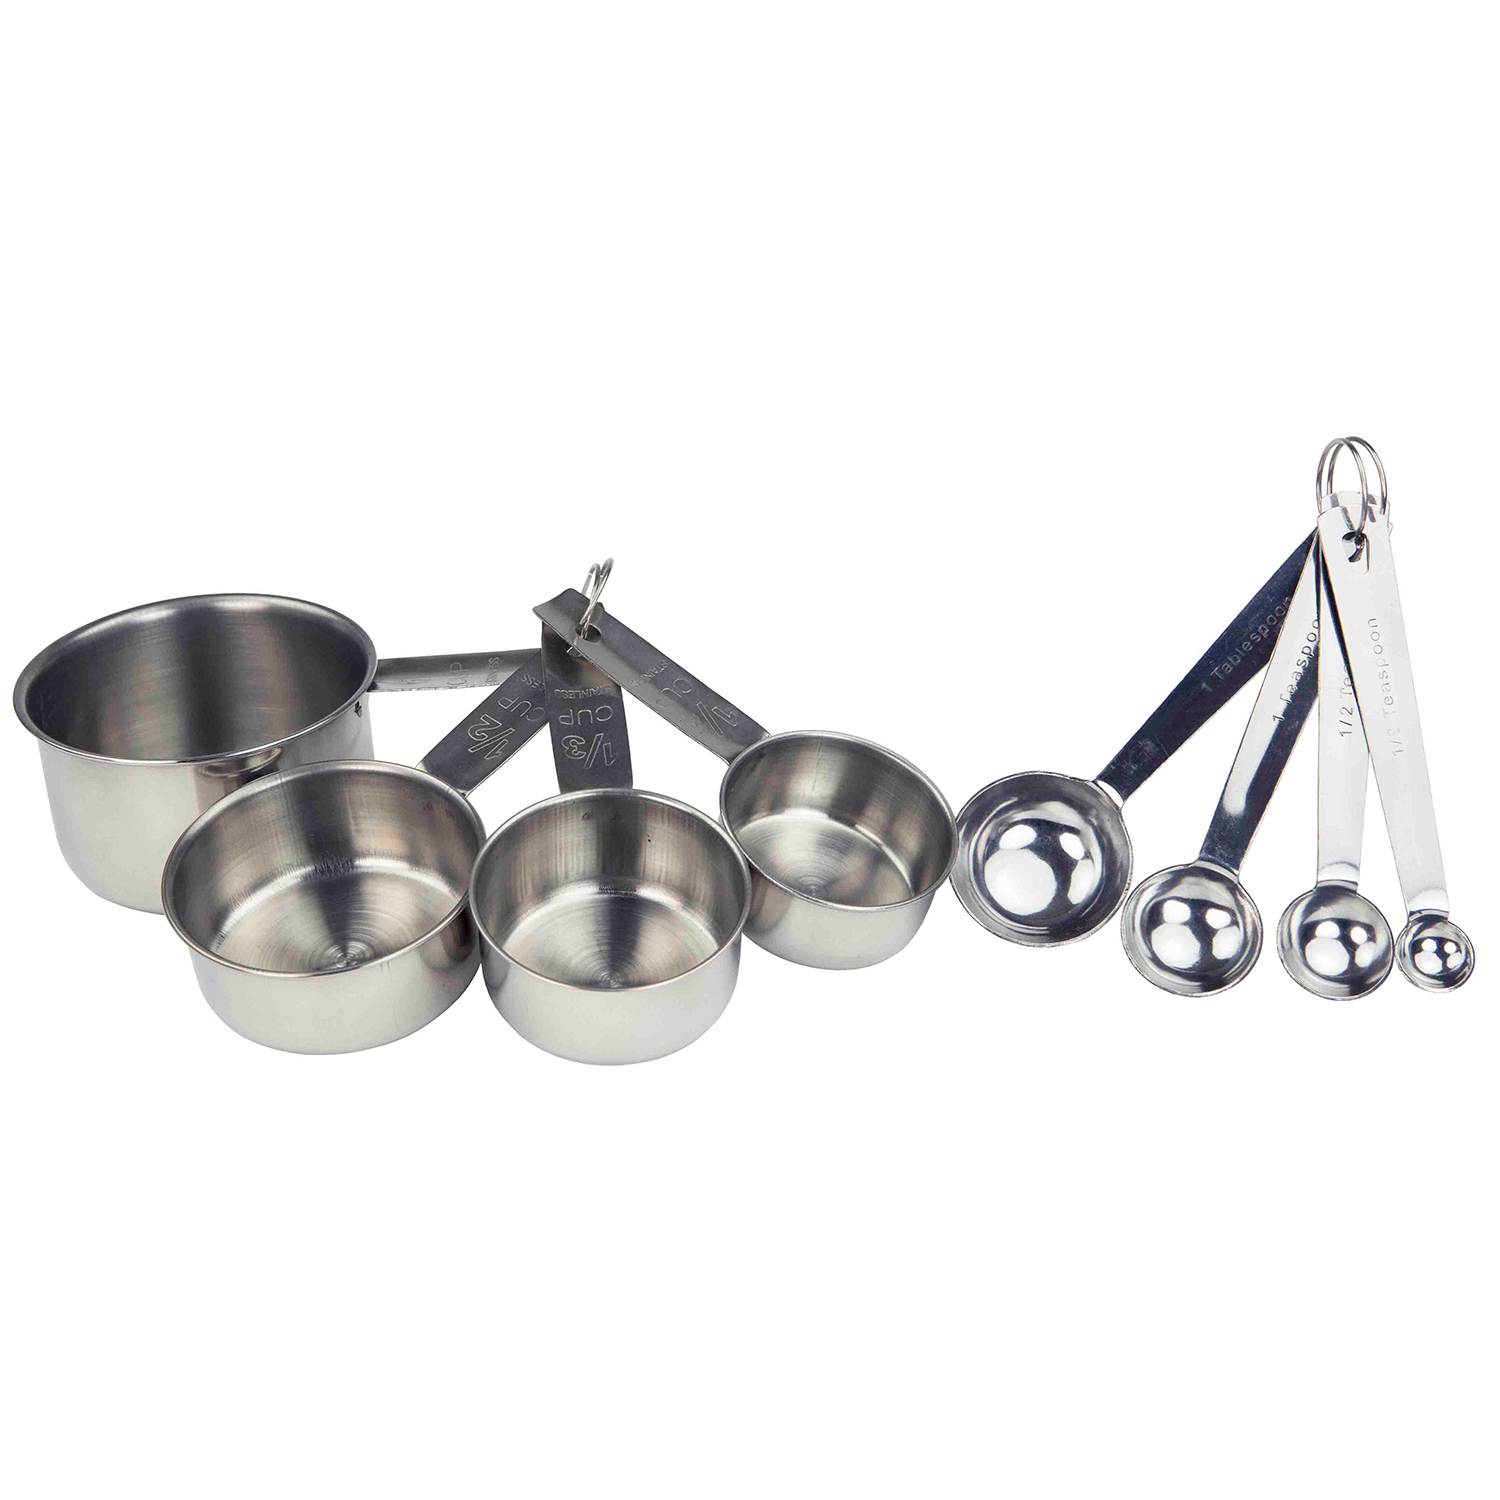 8-Piece Stainless Steel Measuring Cup Set